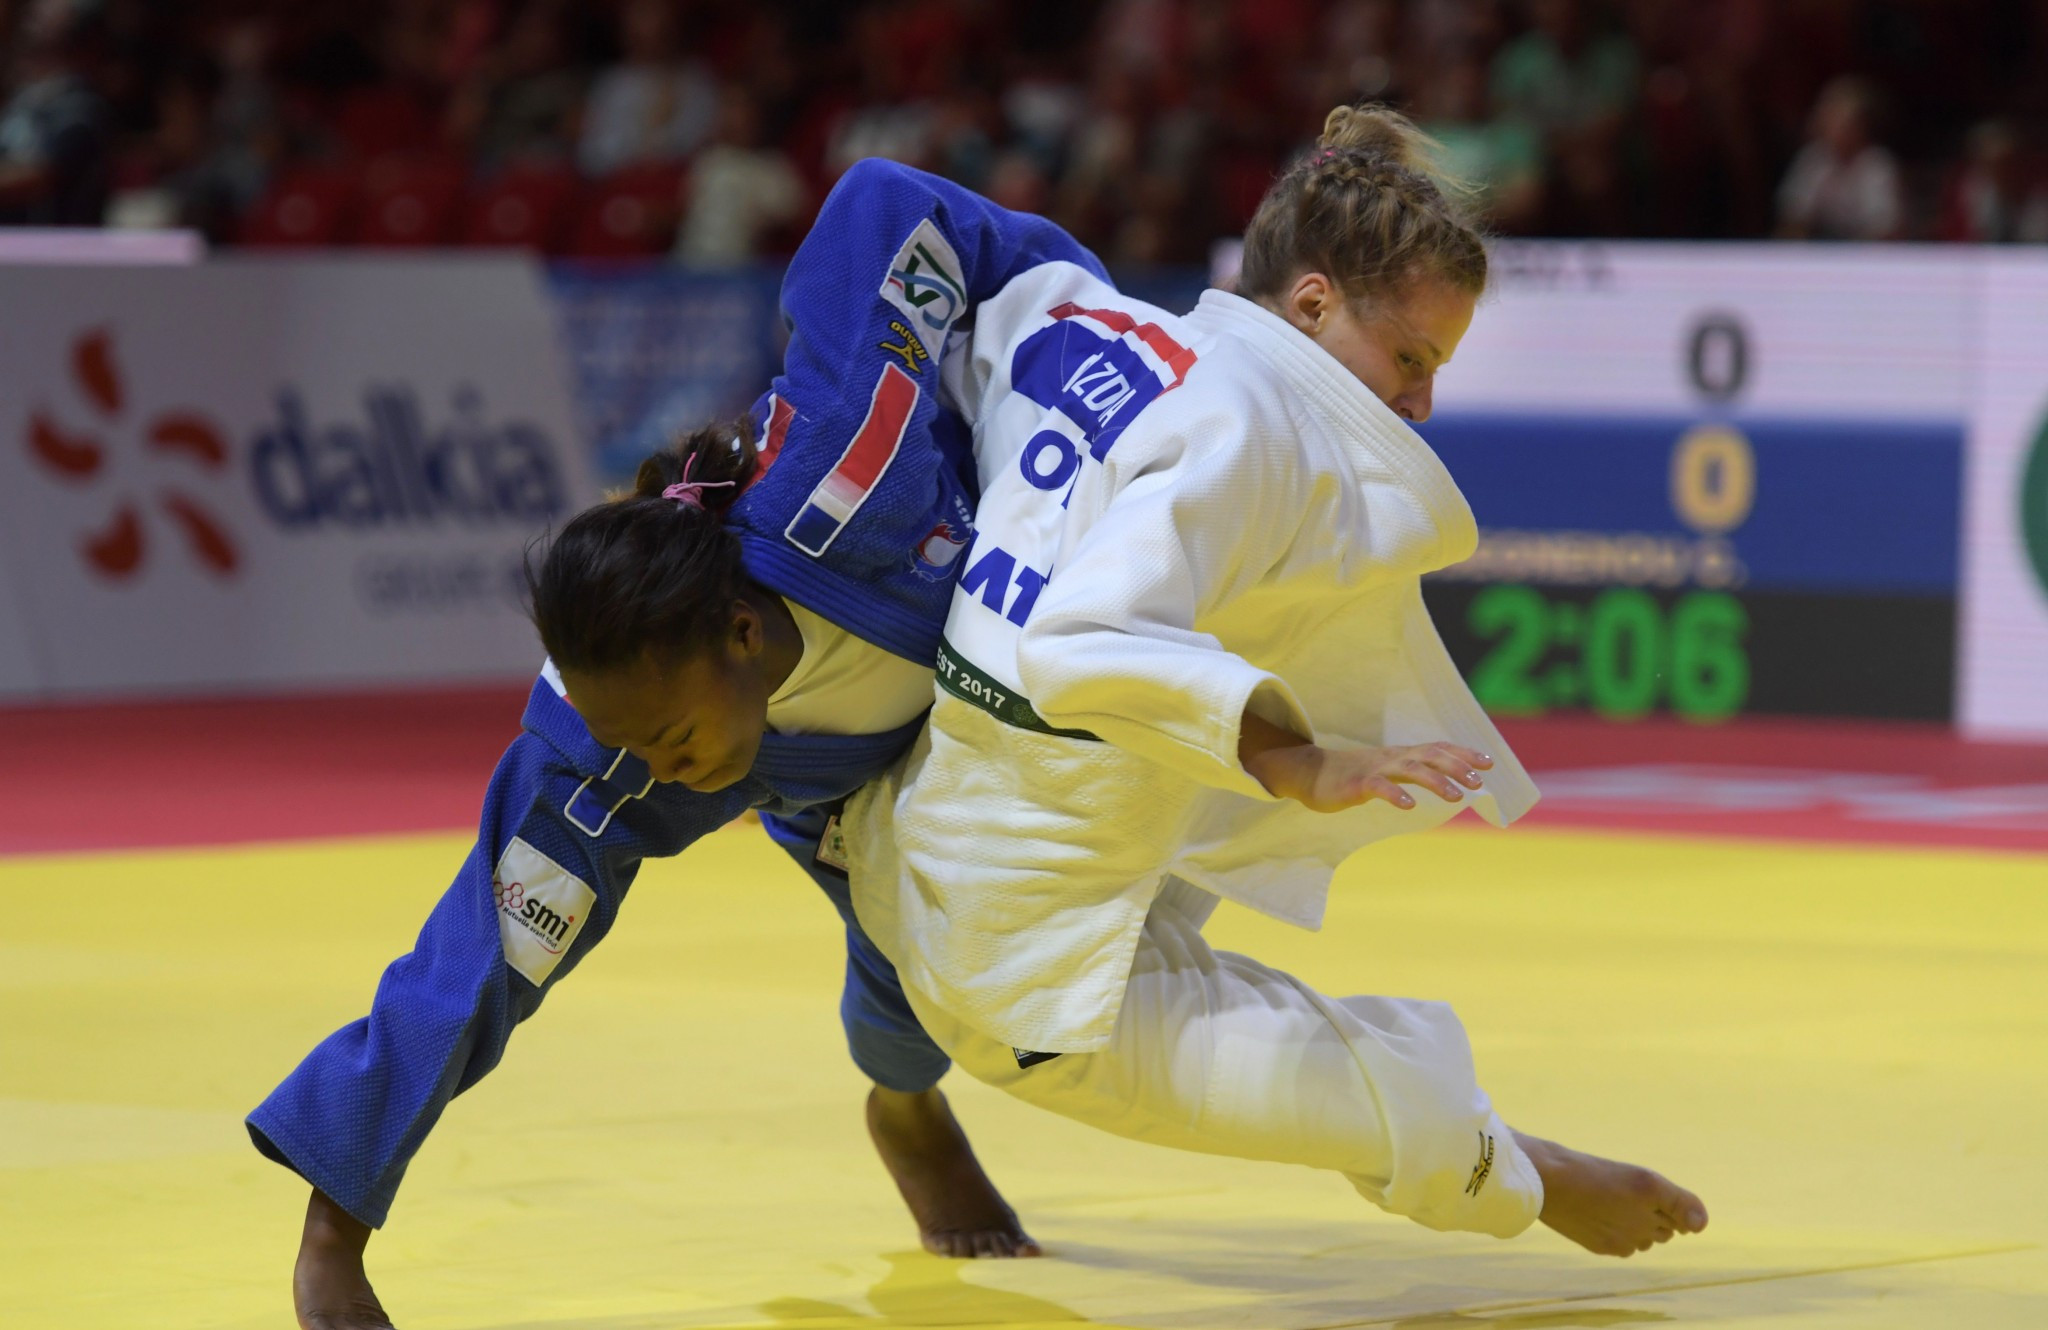 insidethegames reporting LIVE from the IJF World Championships in Budapest